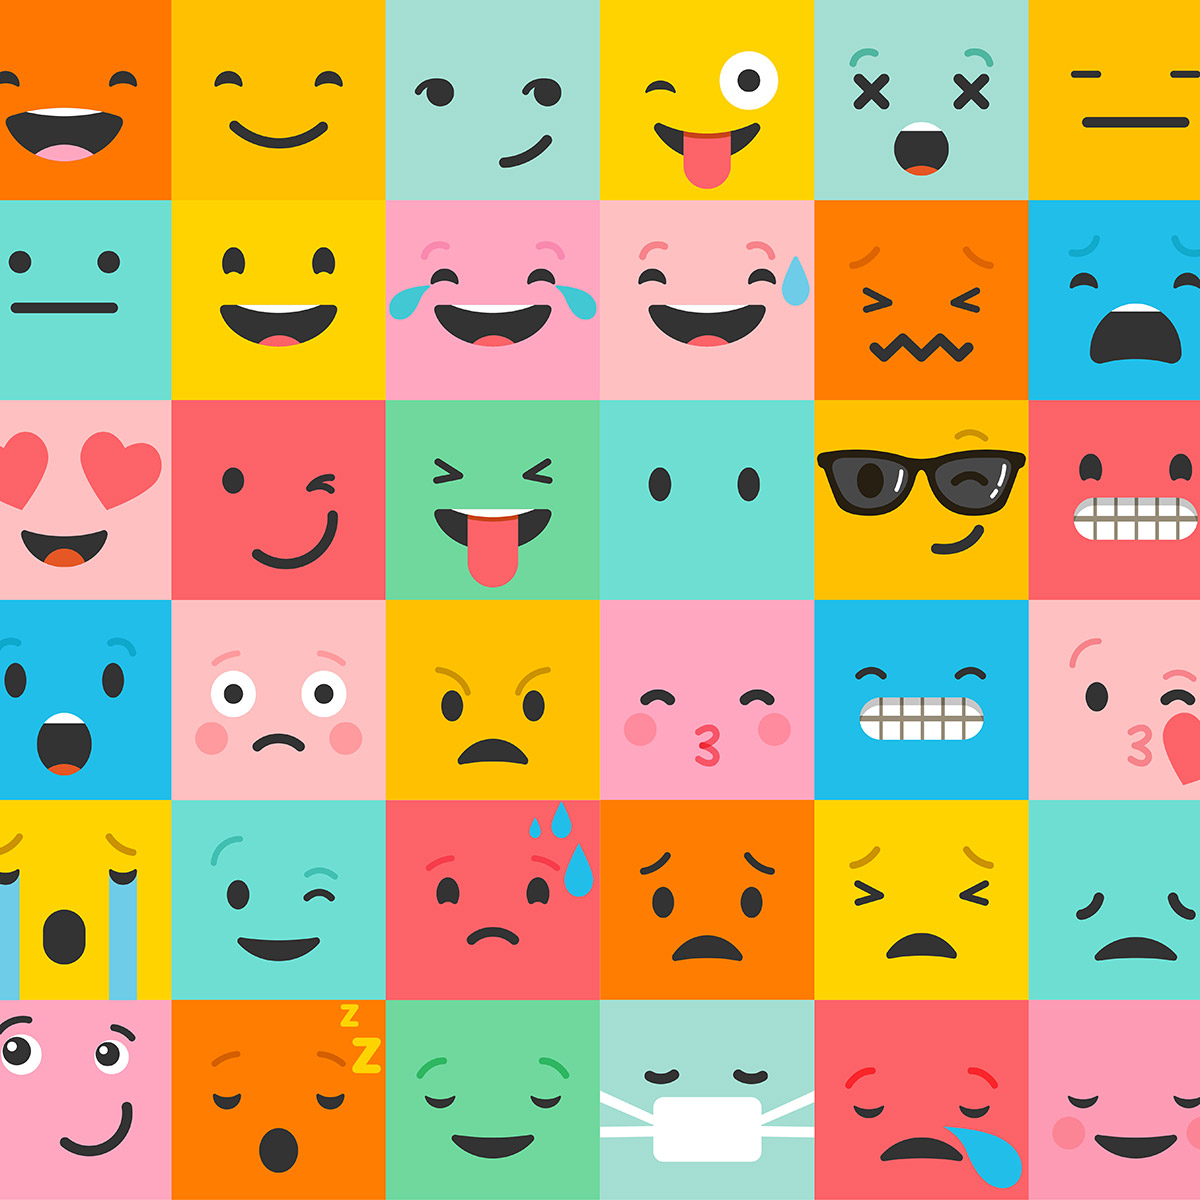 Why Emojis May Be the Key to Employee Retention